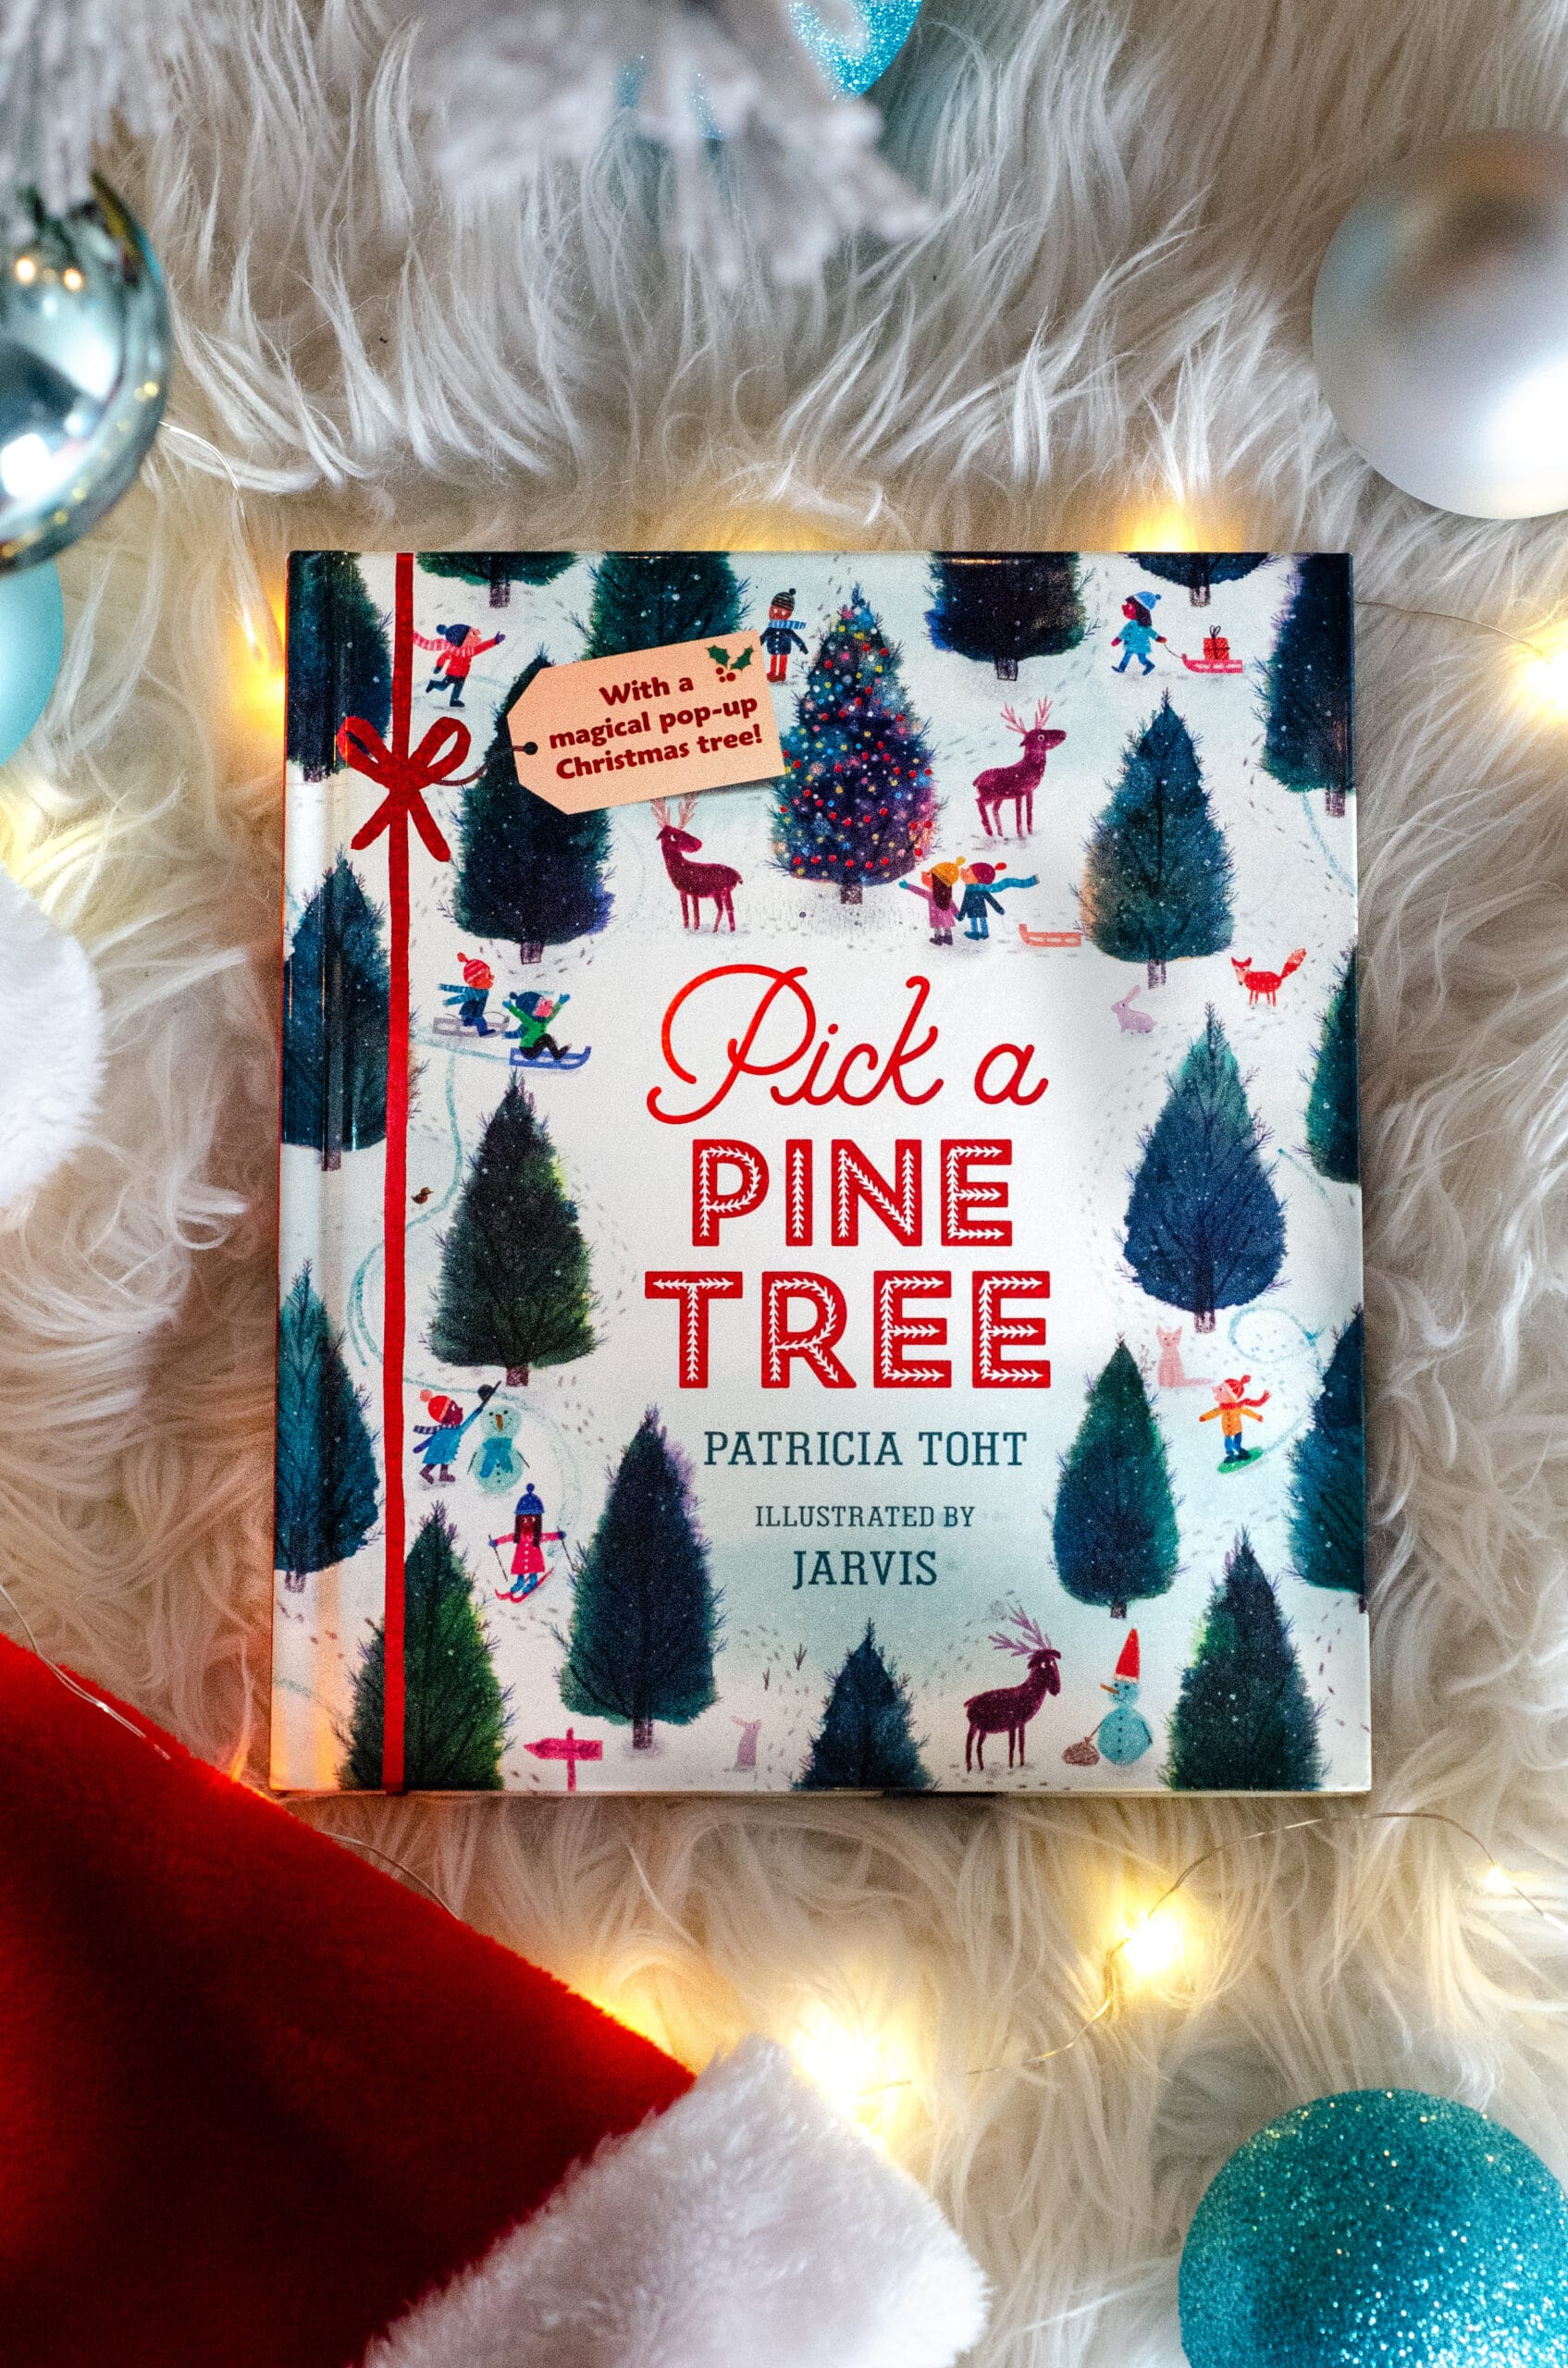 Pick A Pine Tree. Give the gift of literature this holiday season! These wonderful holiday books for kids make great stocking stuffer gifts. Create your very own Christmas Tree Advent Calander using these Children's holiday books, simply stack them into a tree for a new fun holiday tradition.